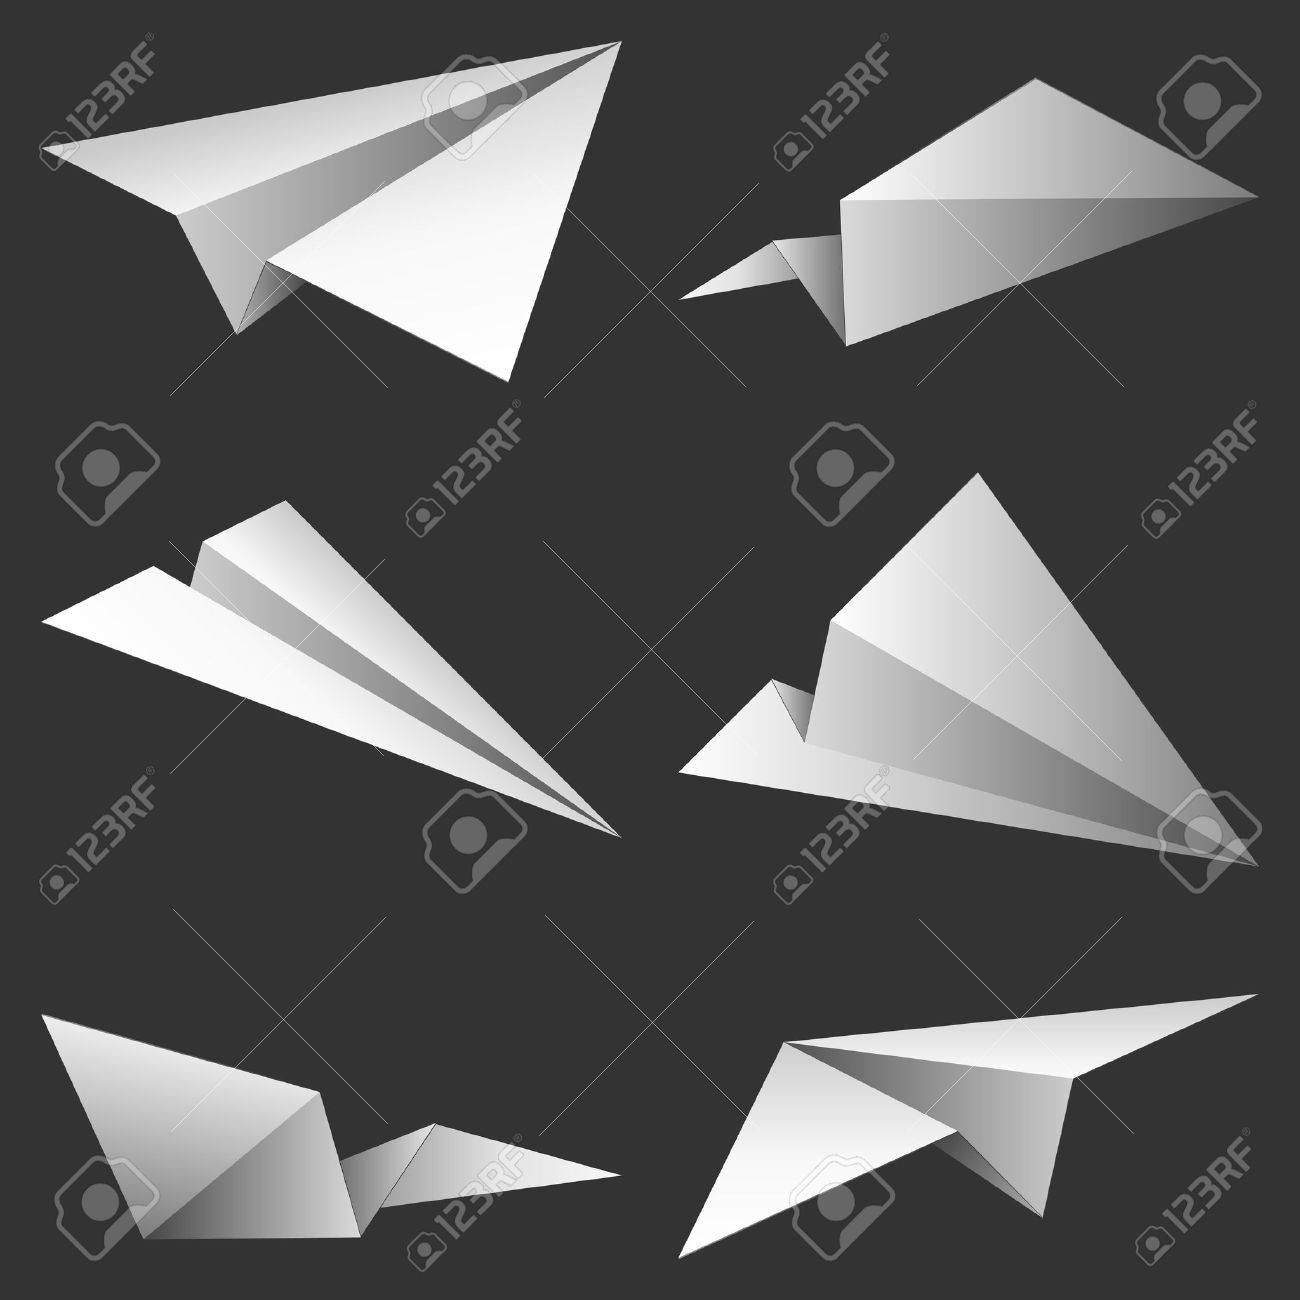 Paper airplanes. Stock Vector - 7630697